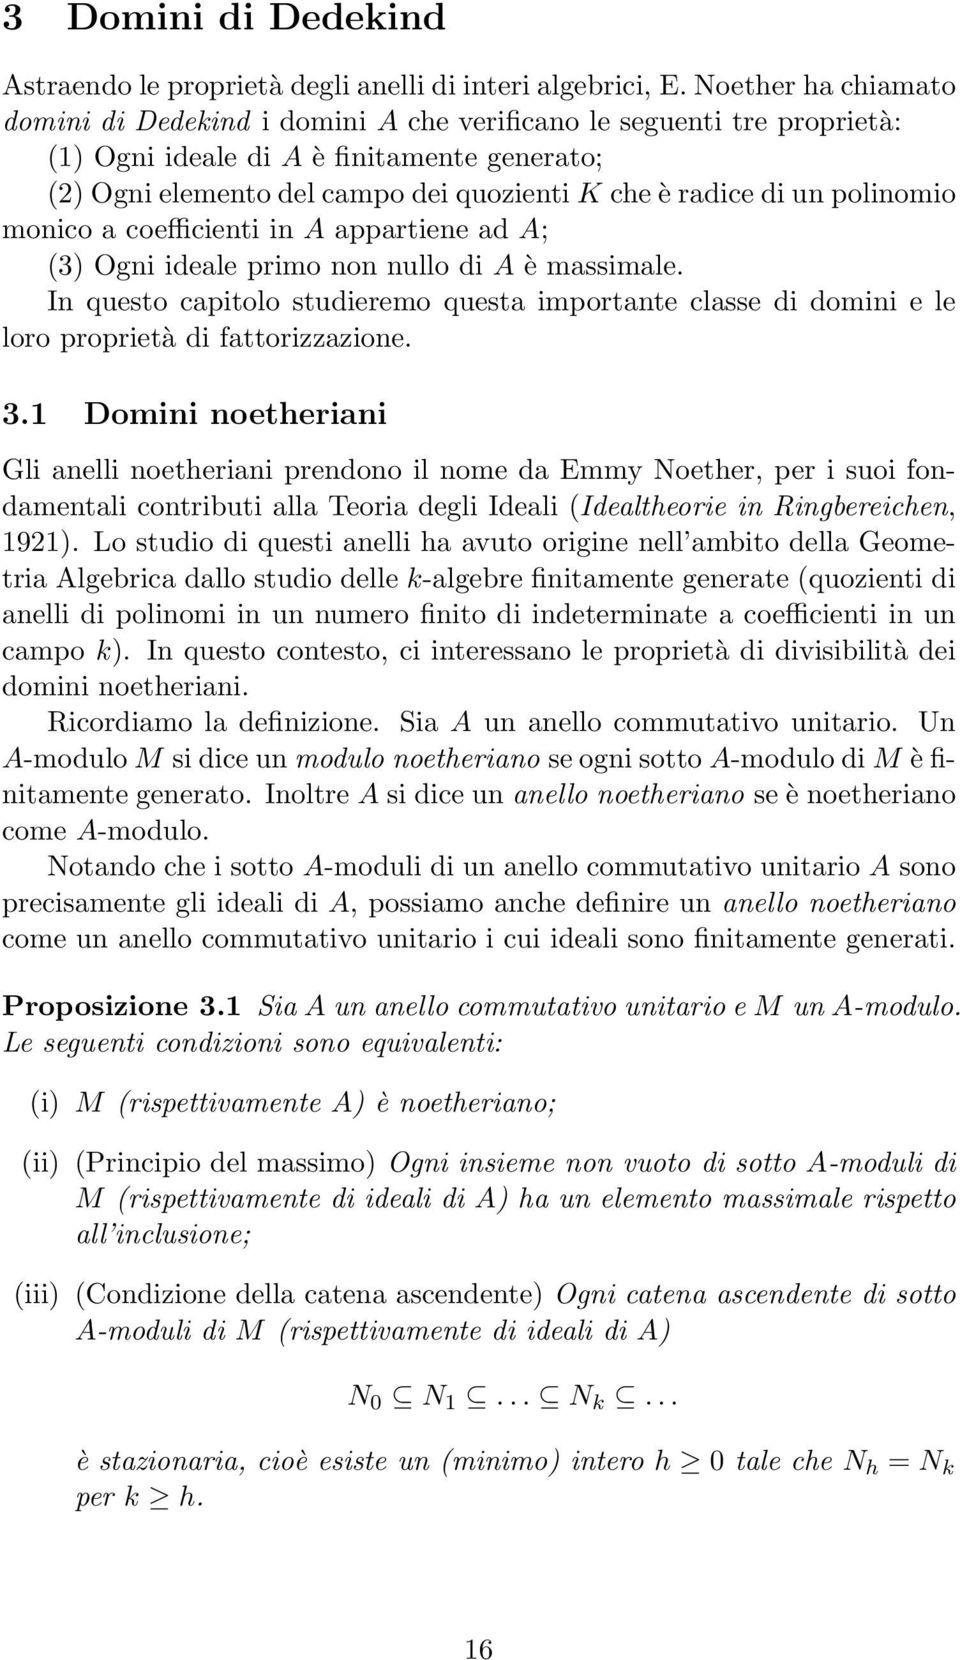 polinomio monico a coefficienti in A appartiene ad A; (3) Ogni ideale primo non nullo di A è massimale.